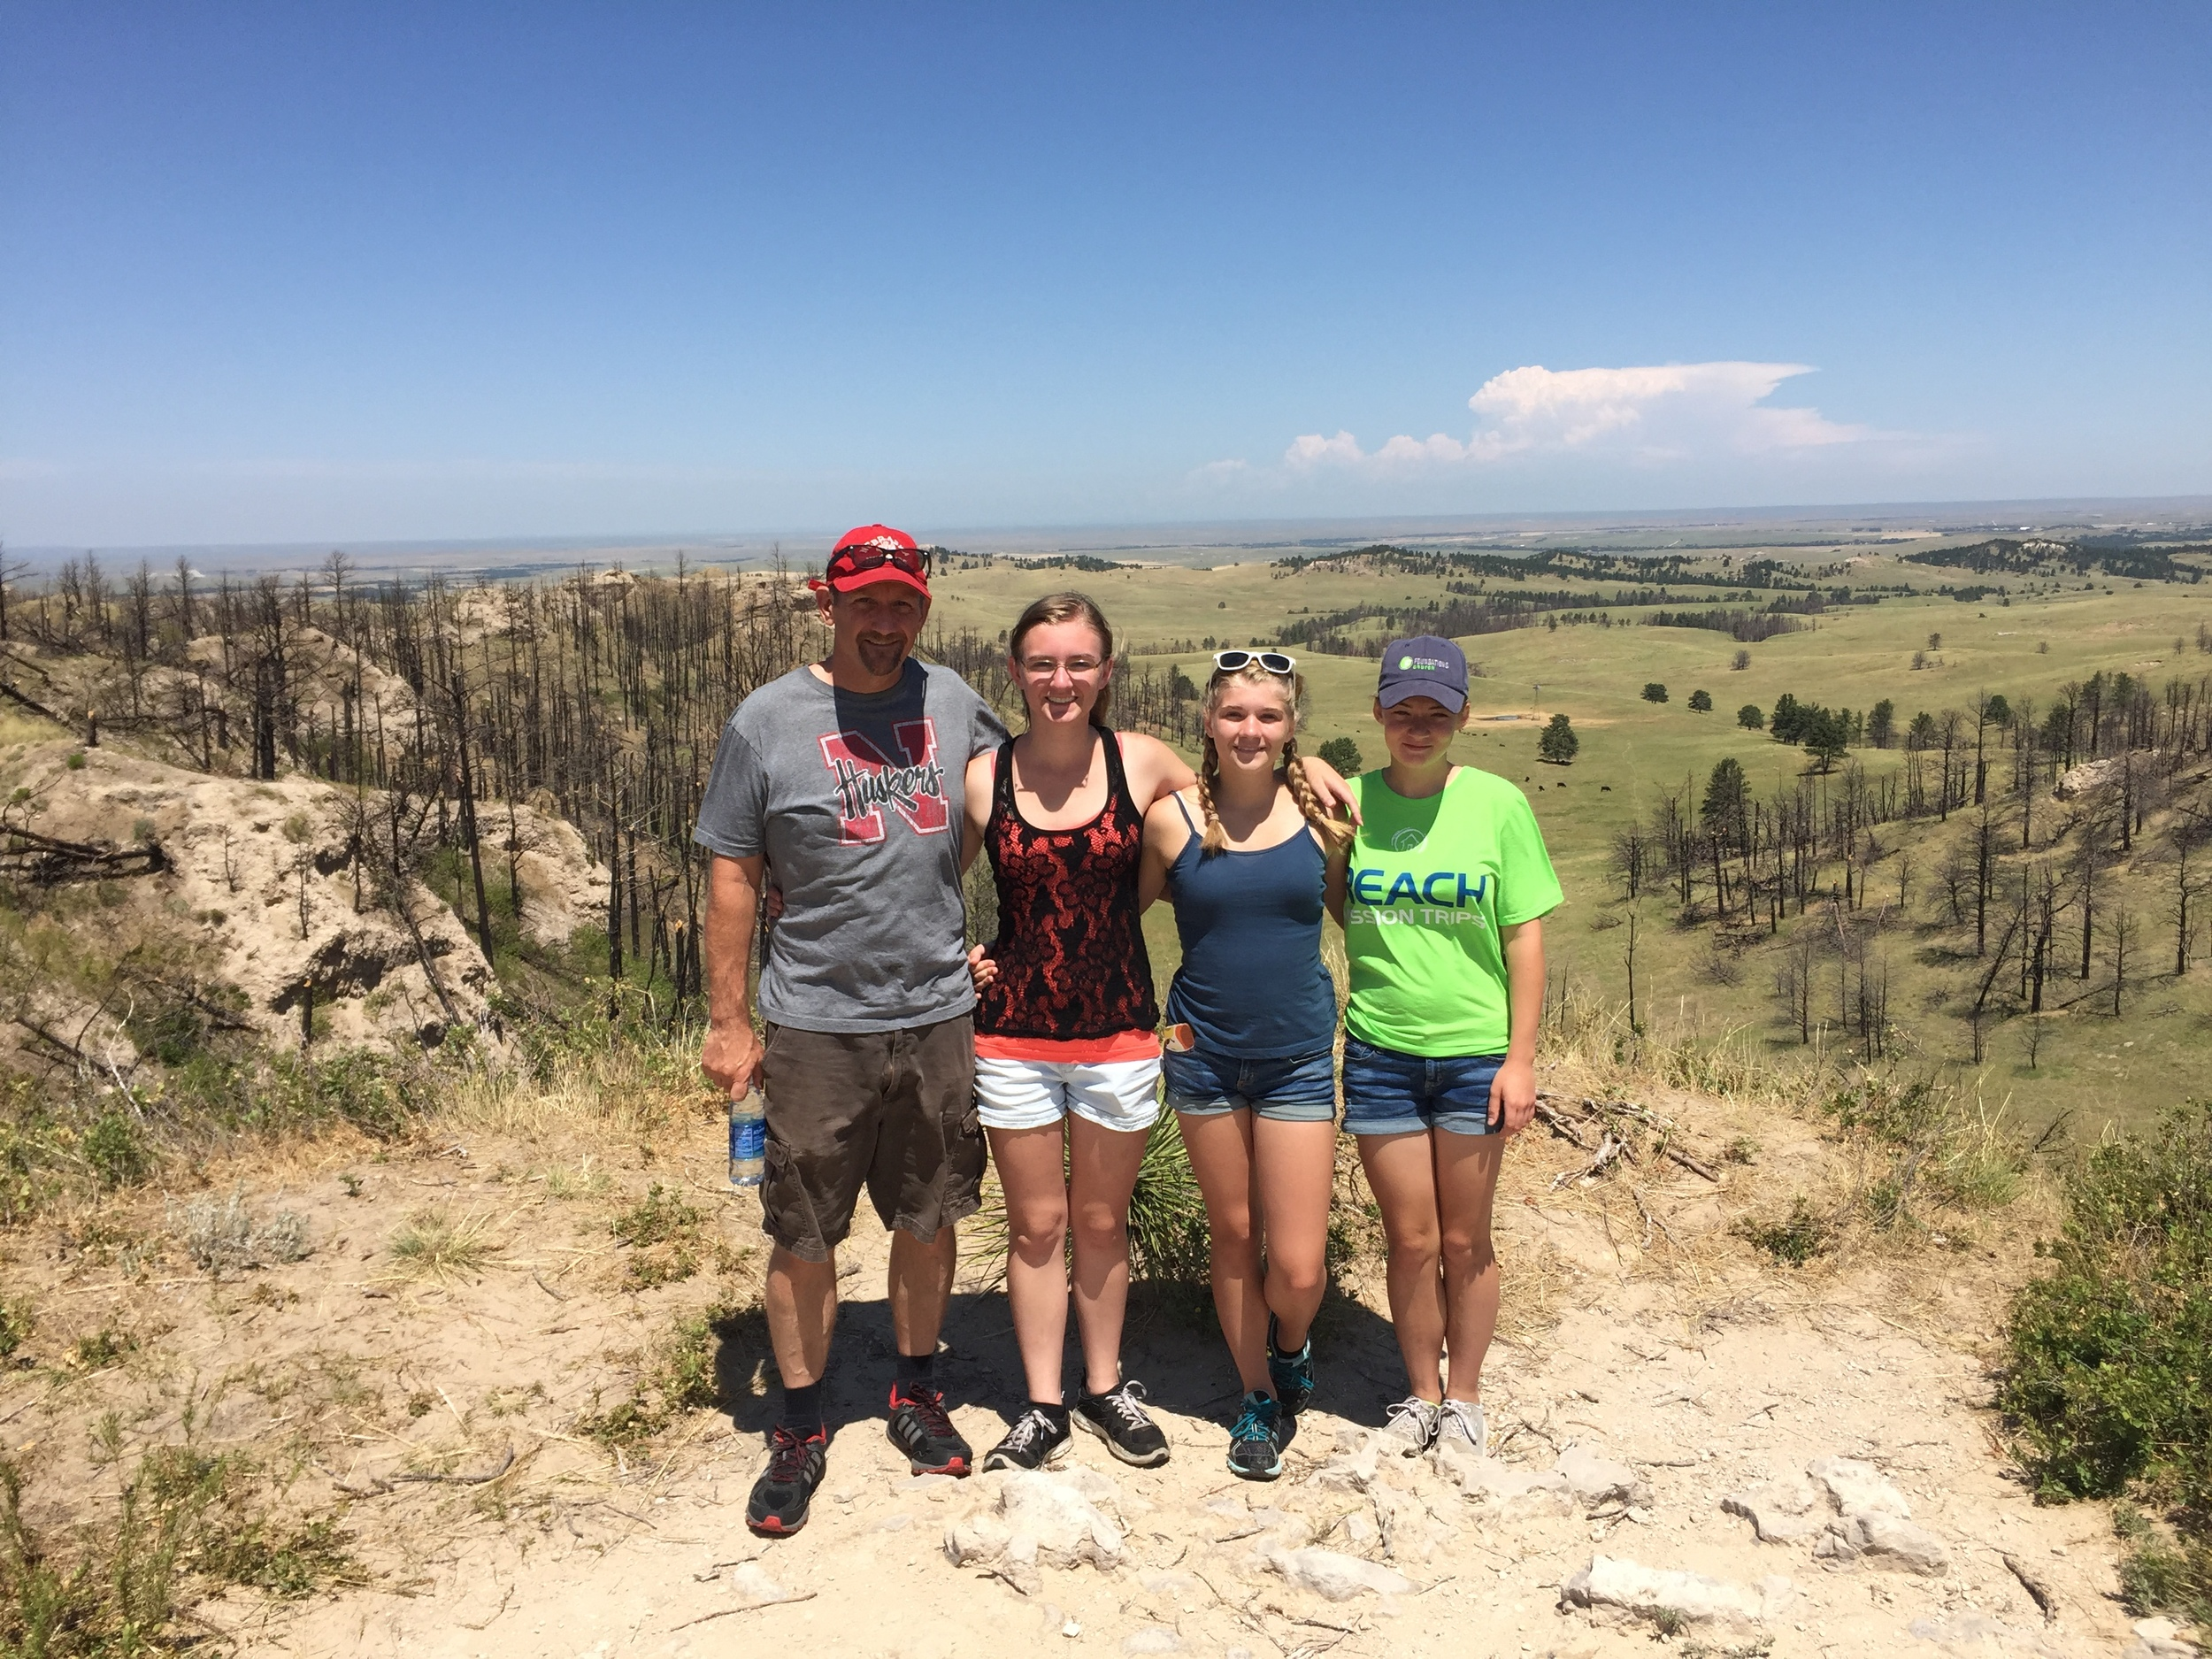 Hiking with the Hyde girls in Chadron, Nebraska